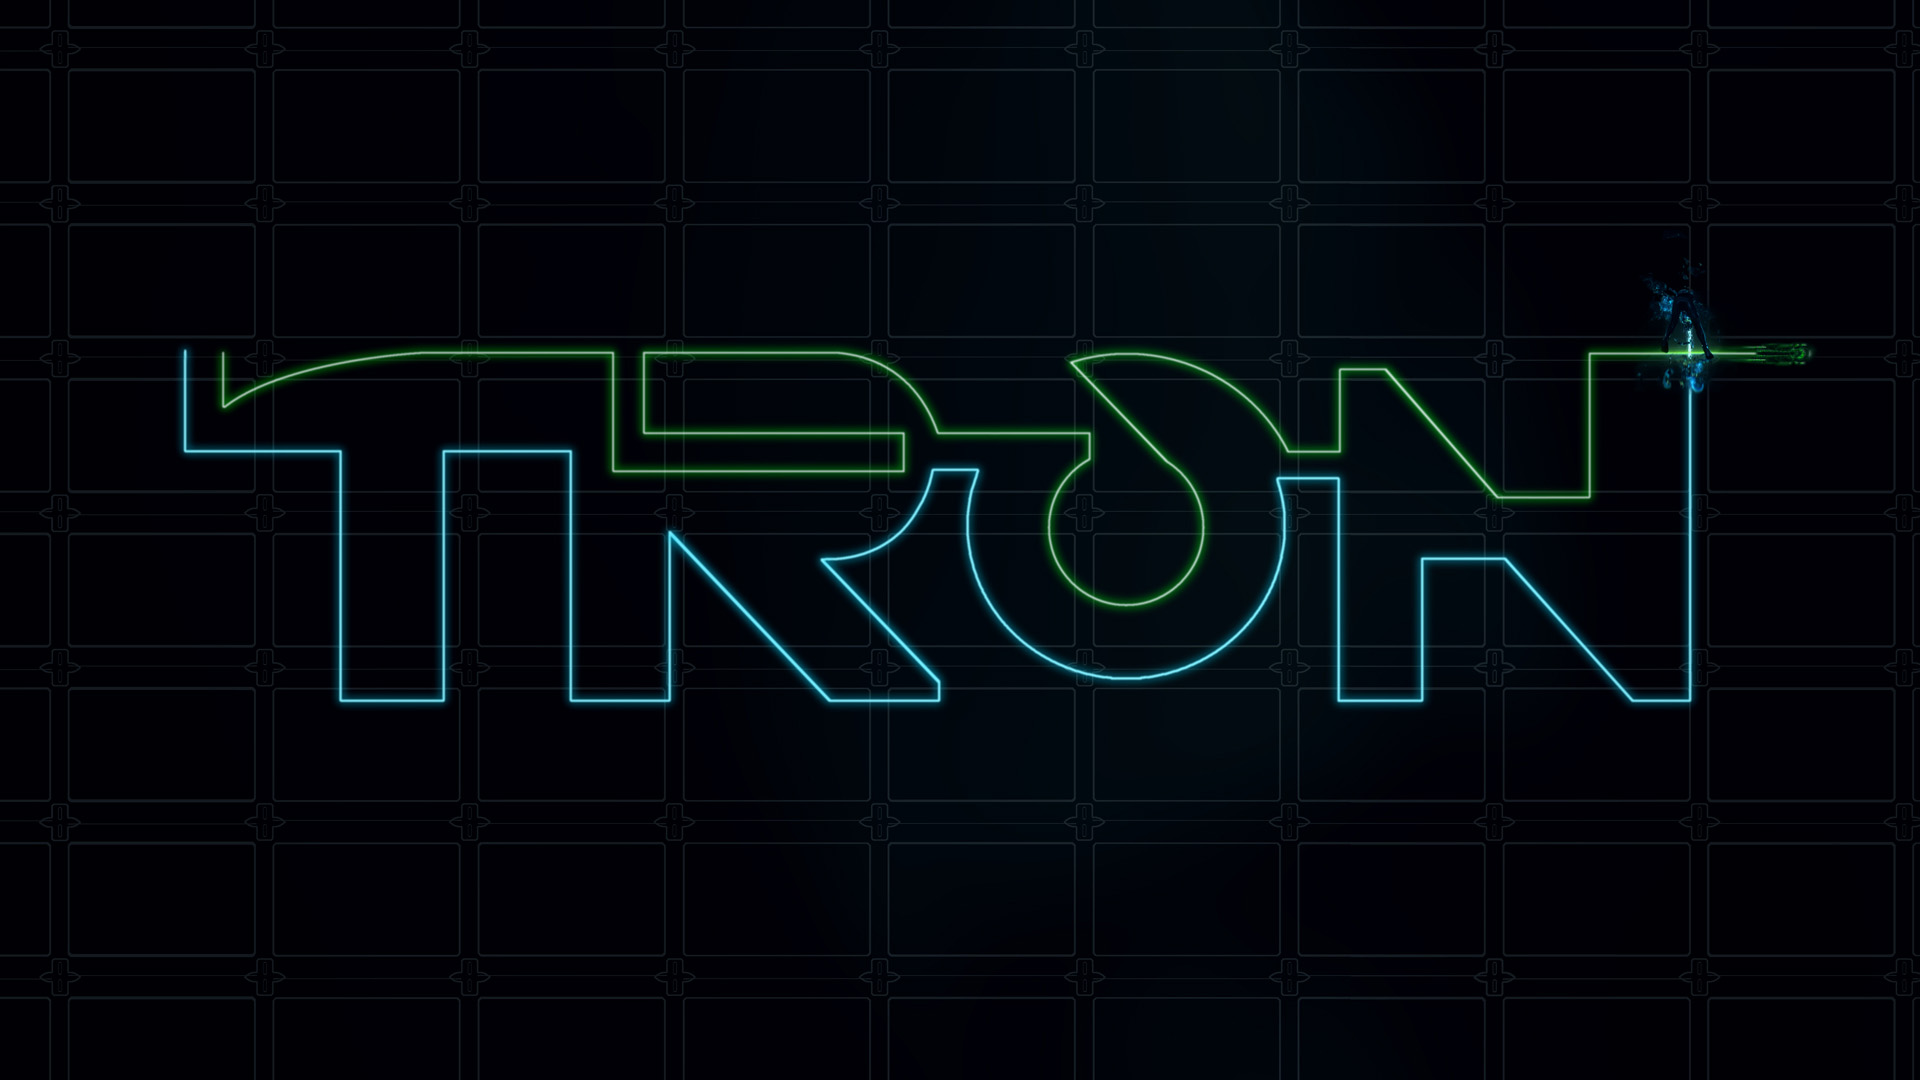 tron the grid wallpaper - photo #34